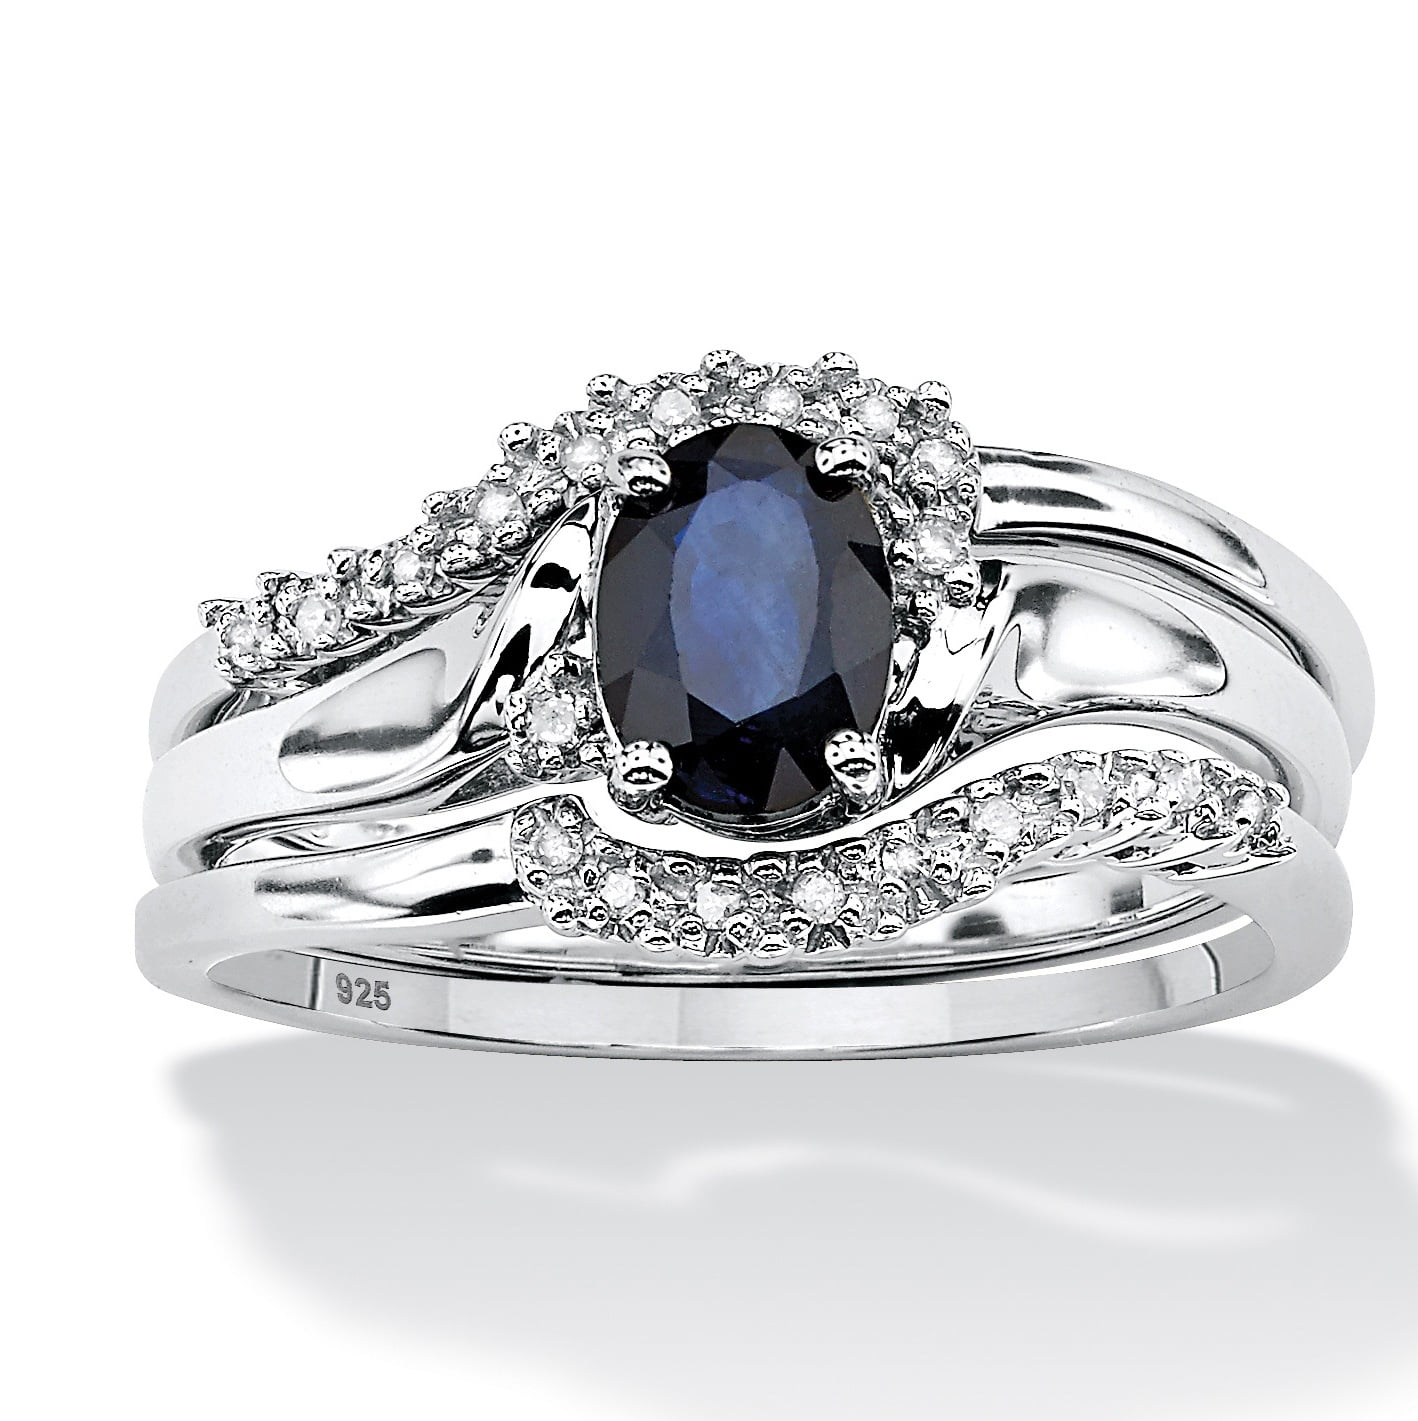 3 Piece 1.05 TCW Oval Sapphire and Diamond Accent Bridal Ring Set in Platinum over Sterling Silver by PalmBeach Jewelry